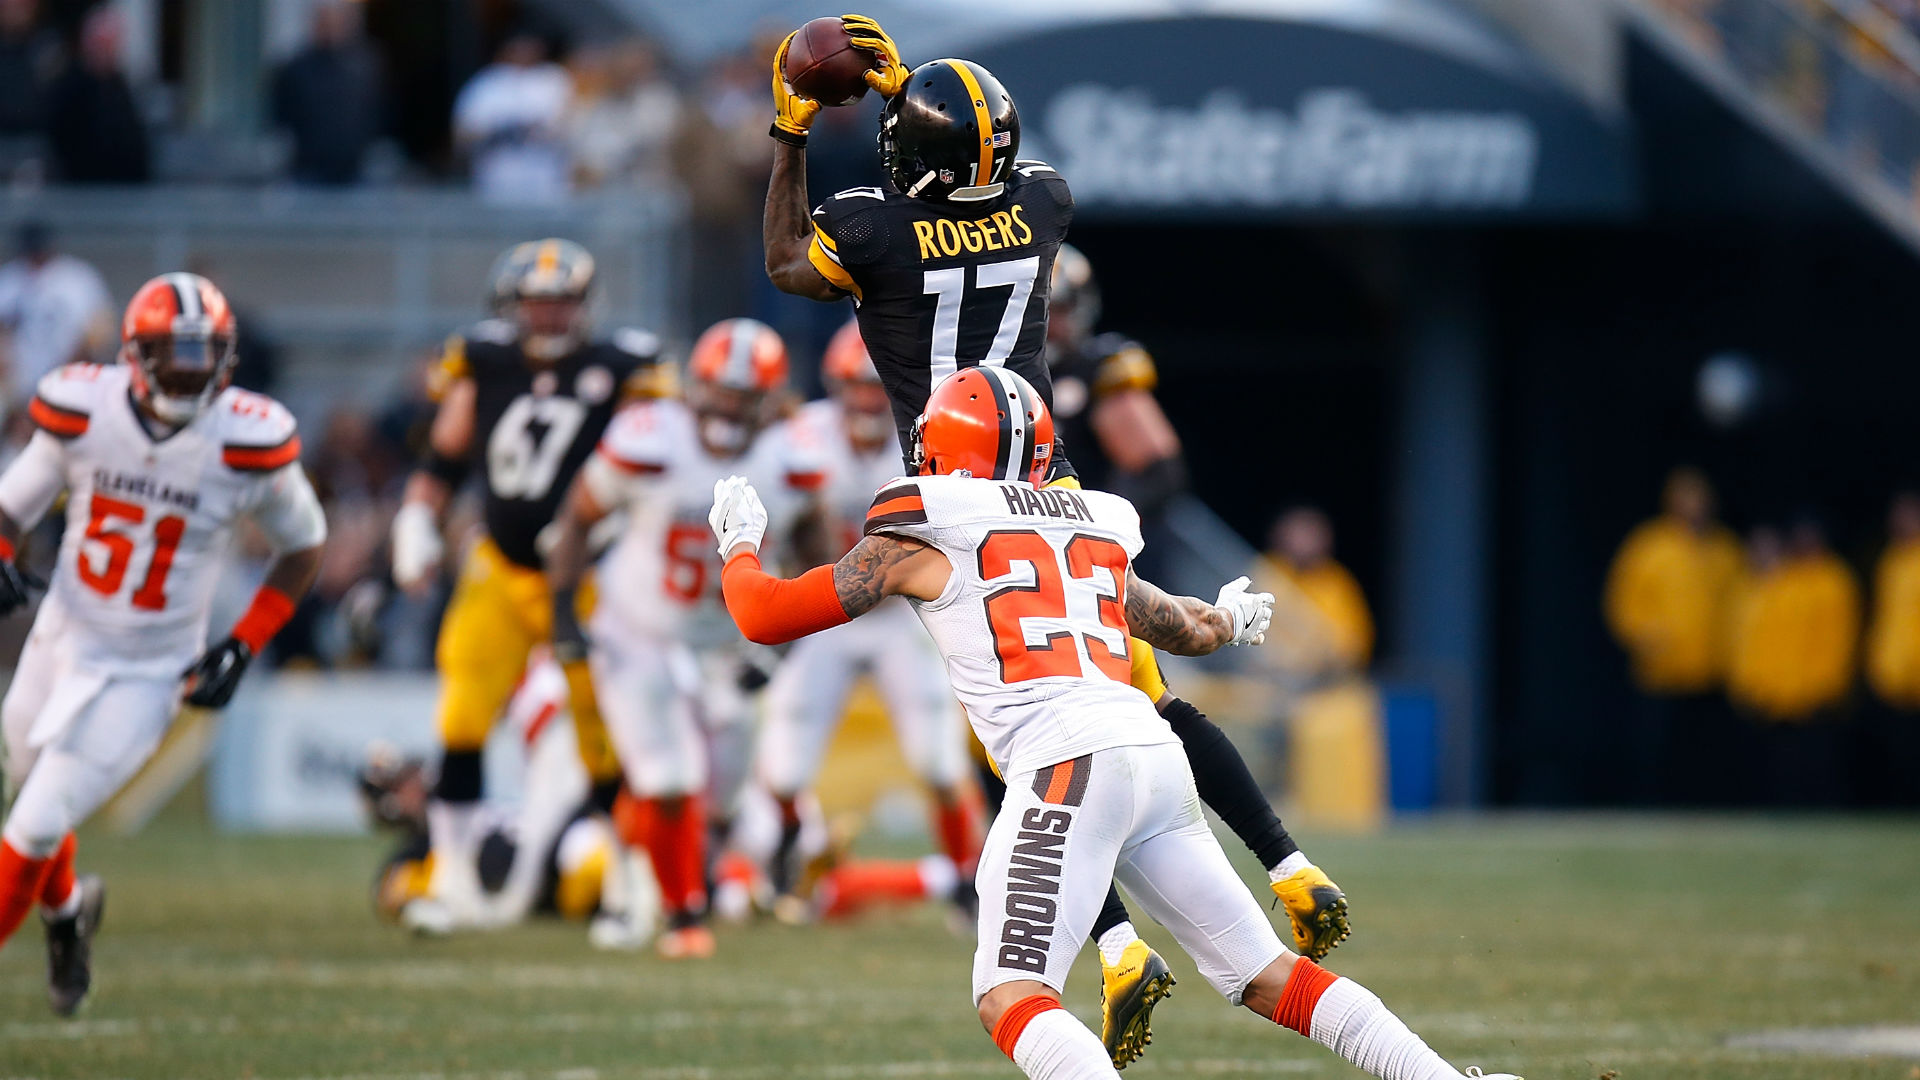 Joe Haden opens up on why he signed with Steelers what led to his